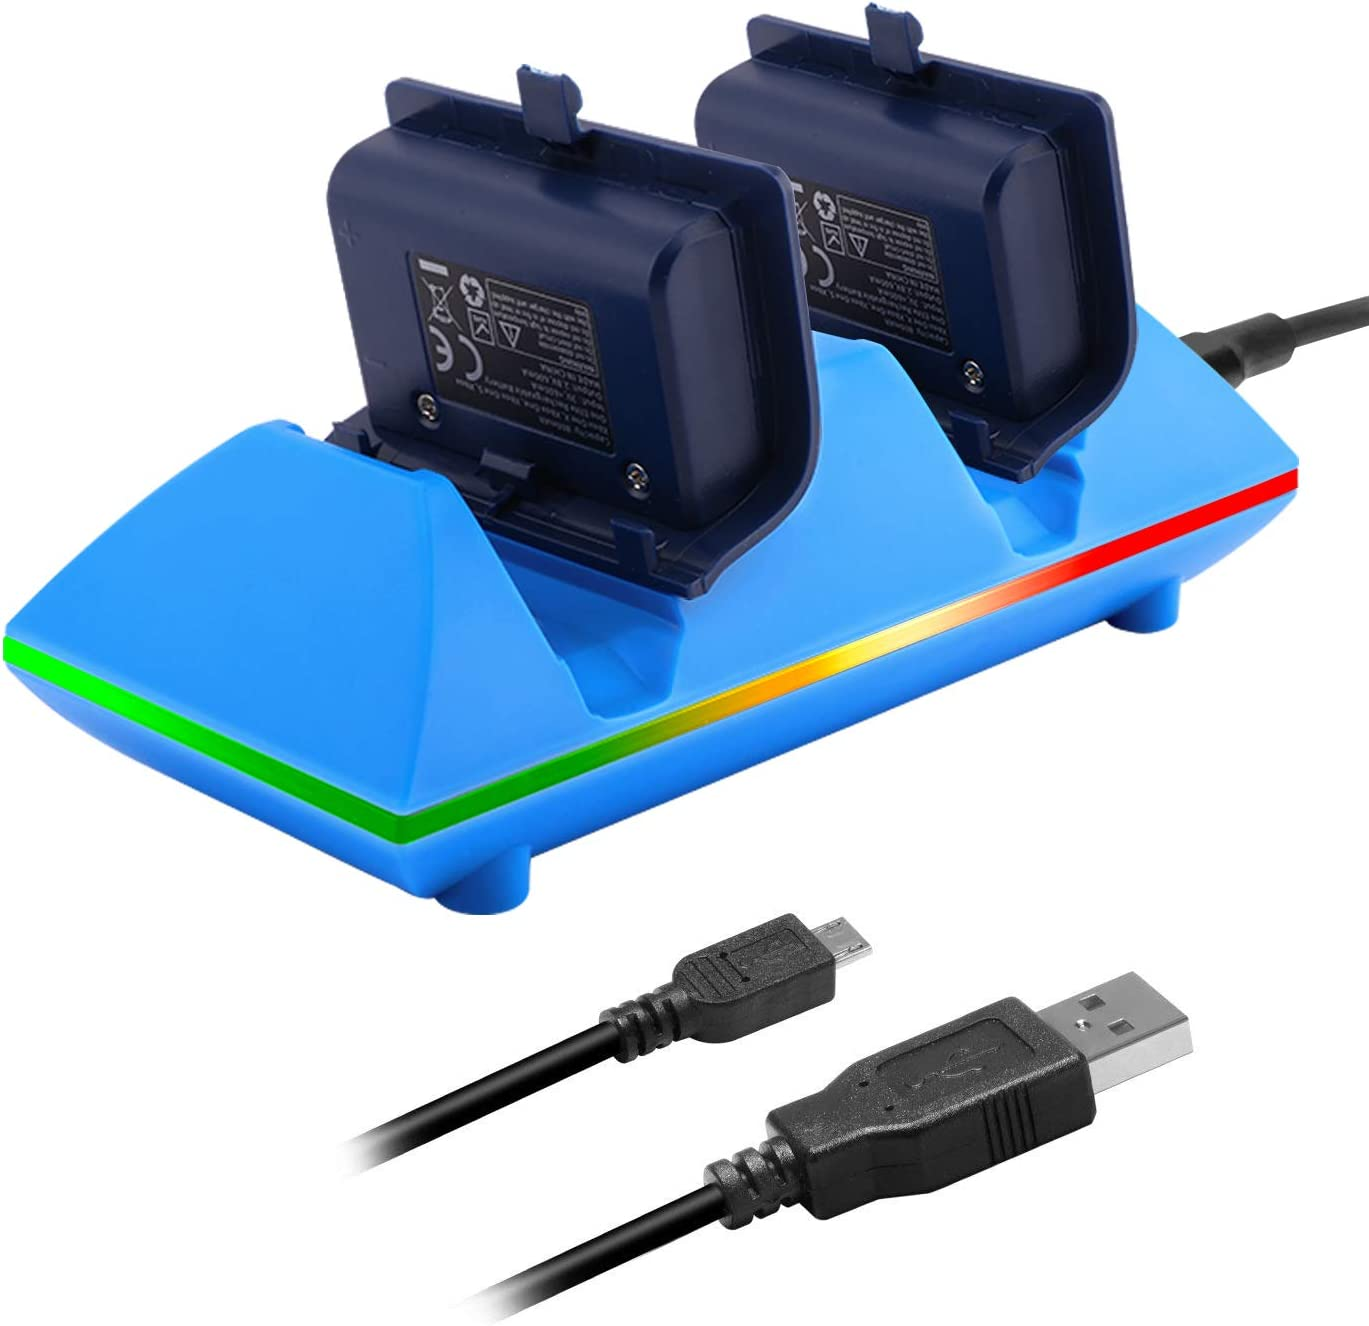 MoKo Xbox One/One S Controller Charger Dock Kit 2 x 800mAh Rechargeable Battery Packs Charging Station for Xbox One One S One X Xbox One Elite Controllers - Blue